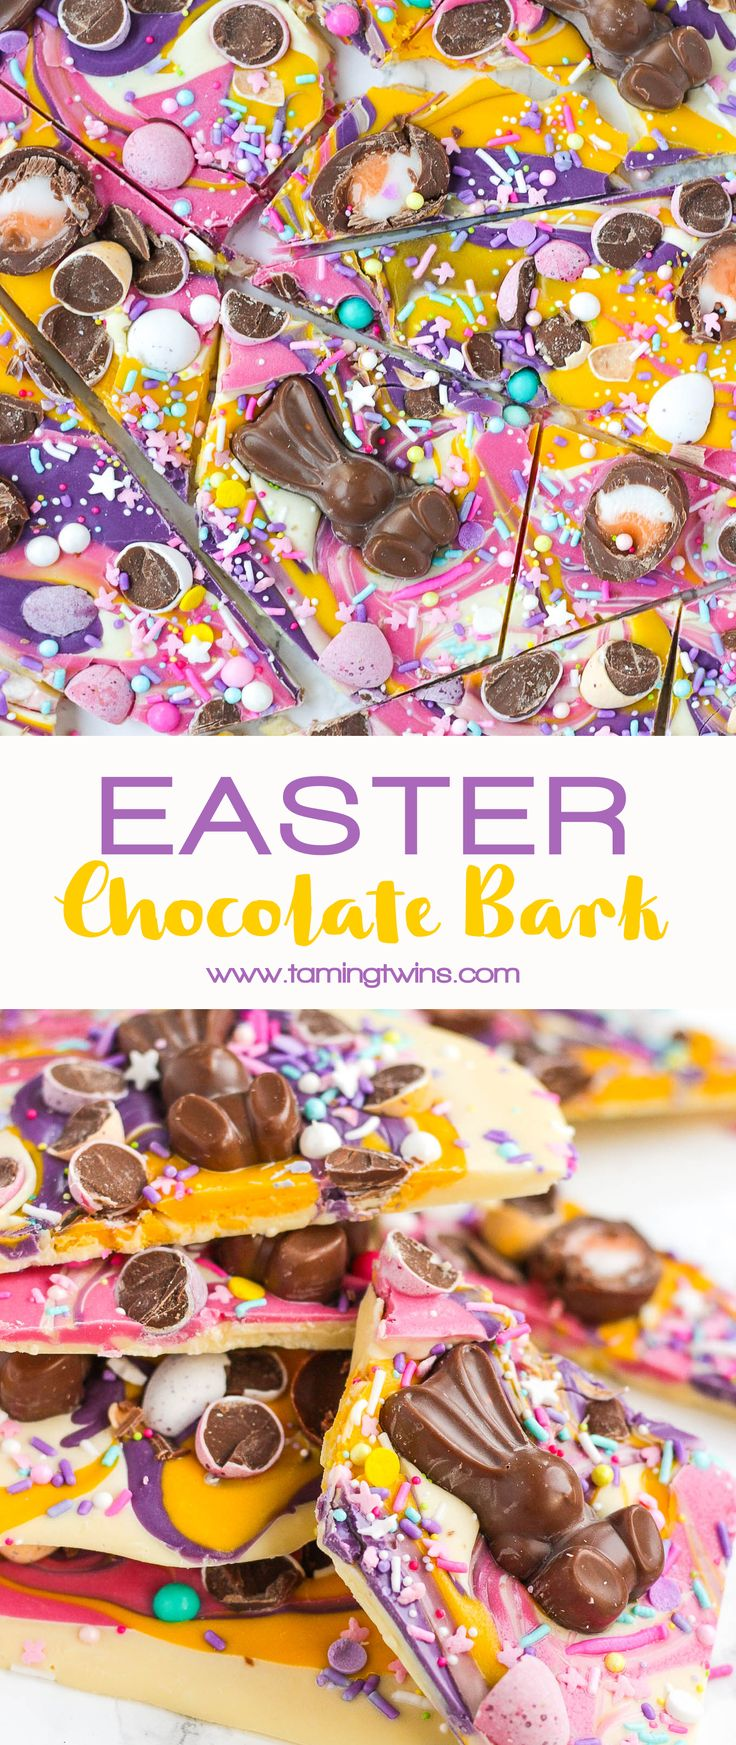 Show stopping Chocolate Easter Bark (with HOW TO VIDEO!). A brilliant make for a Comic Relief Bake Sale! Who wouldn't want to snap up a bag of this?! Super simple and easy to make, topped with MaltEaster Malteaser Bunnies, chocolates and sprinkles, this is a no bake, must make for Easter.